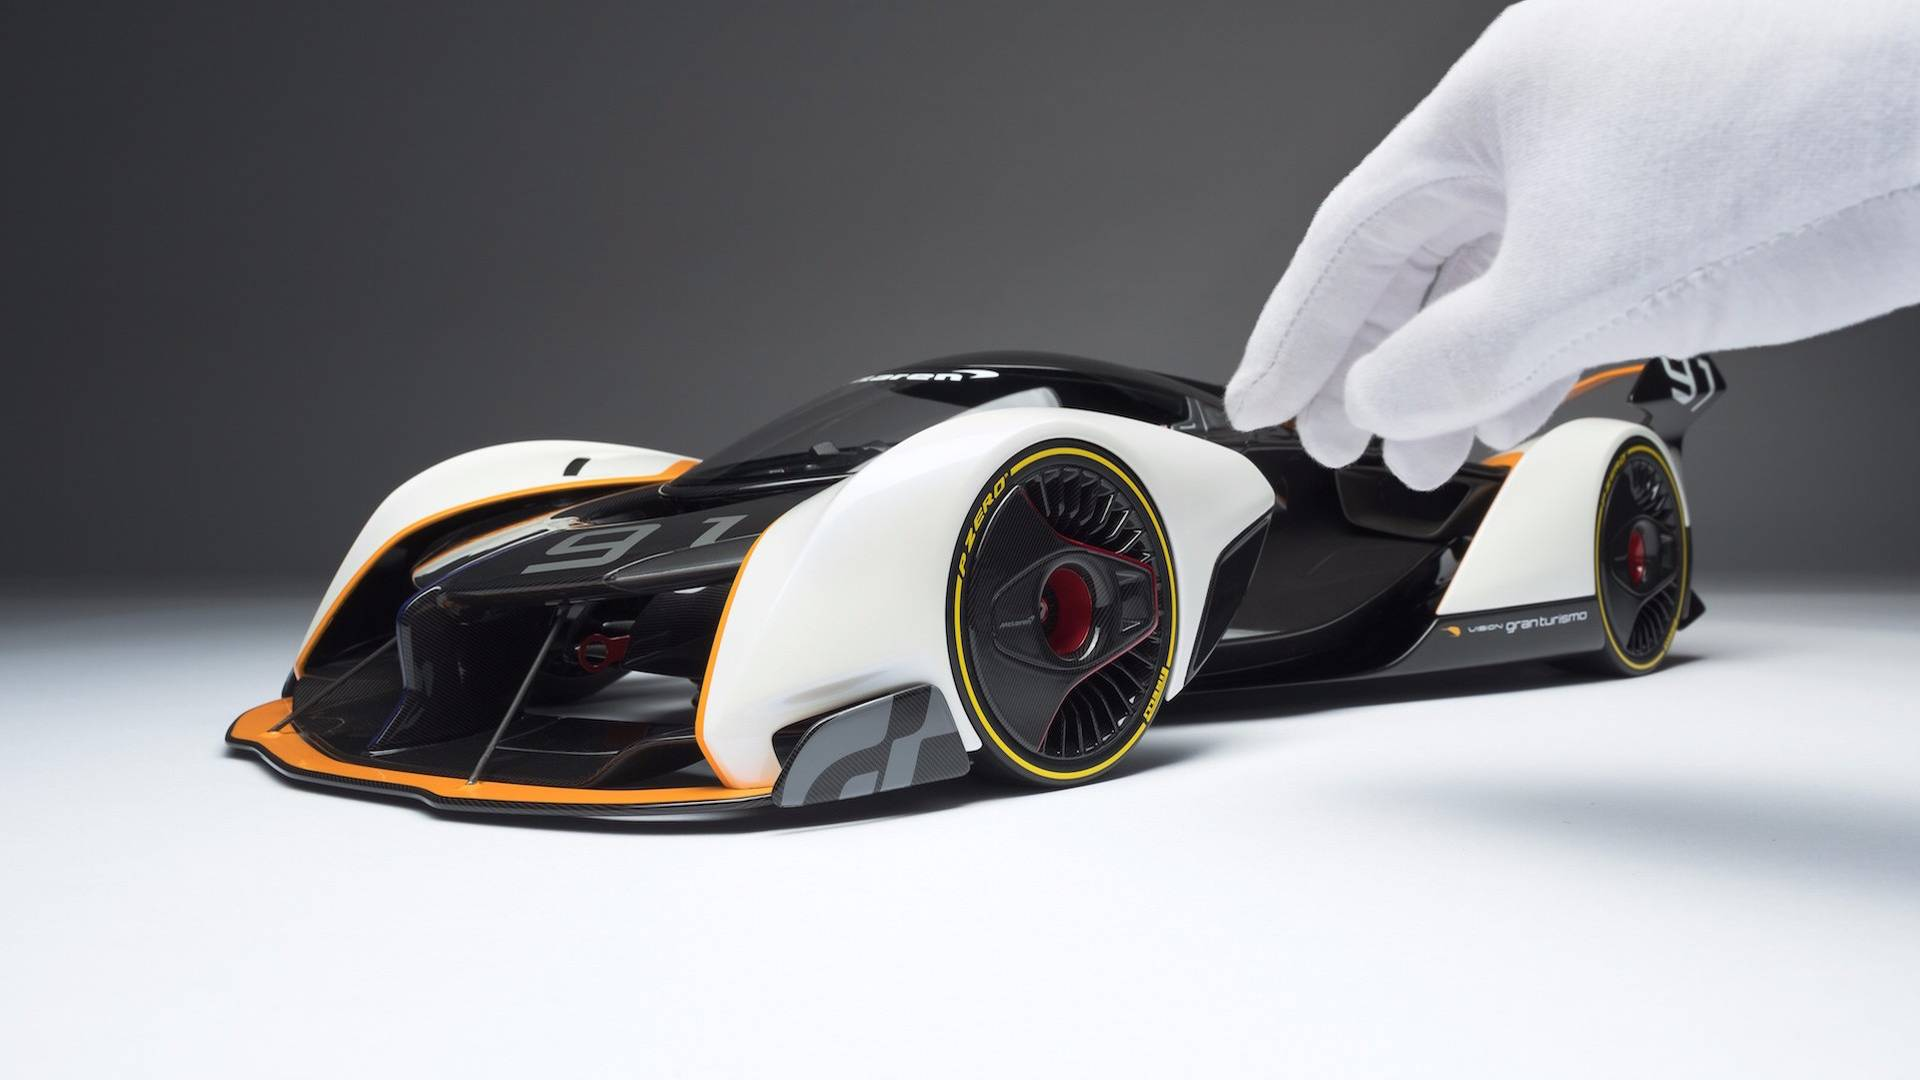 mclaren-ultimate-vision-gt-scale-model